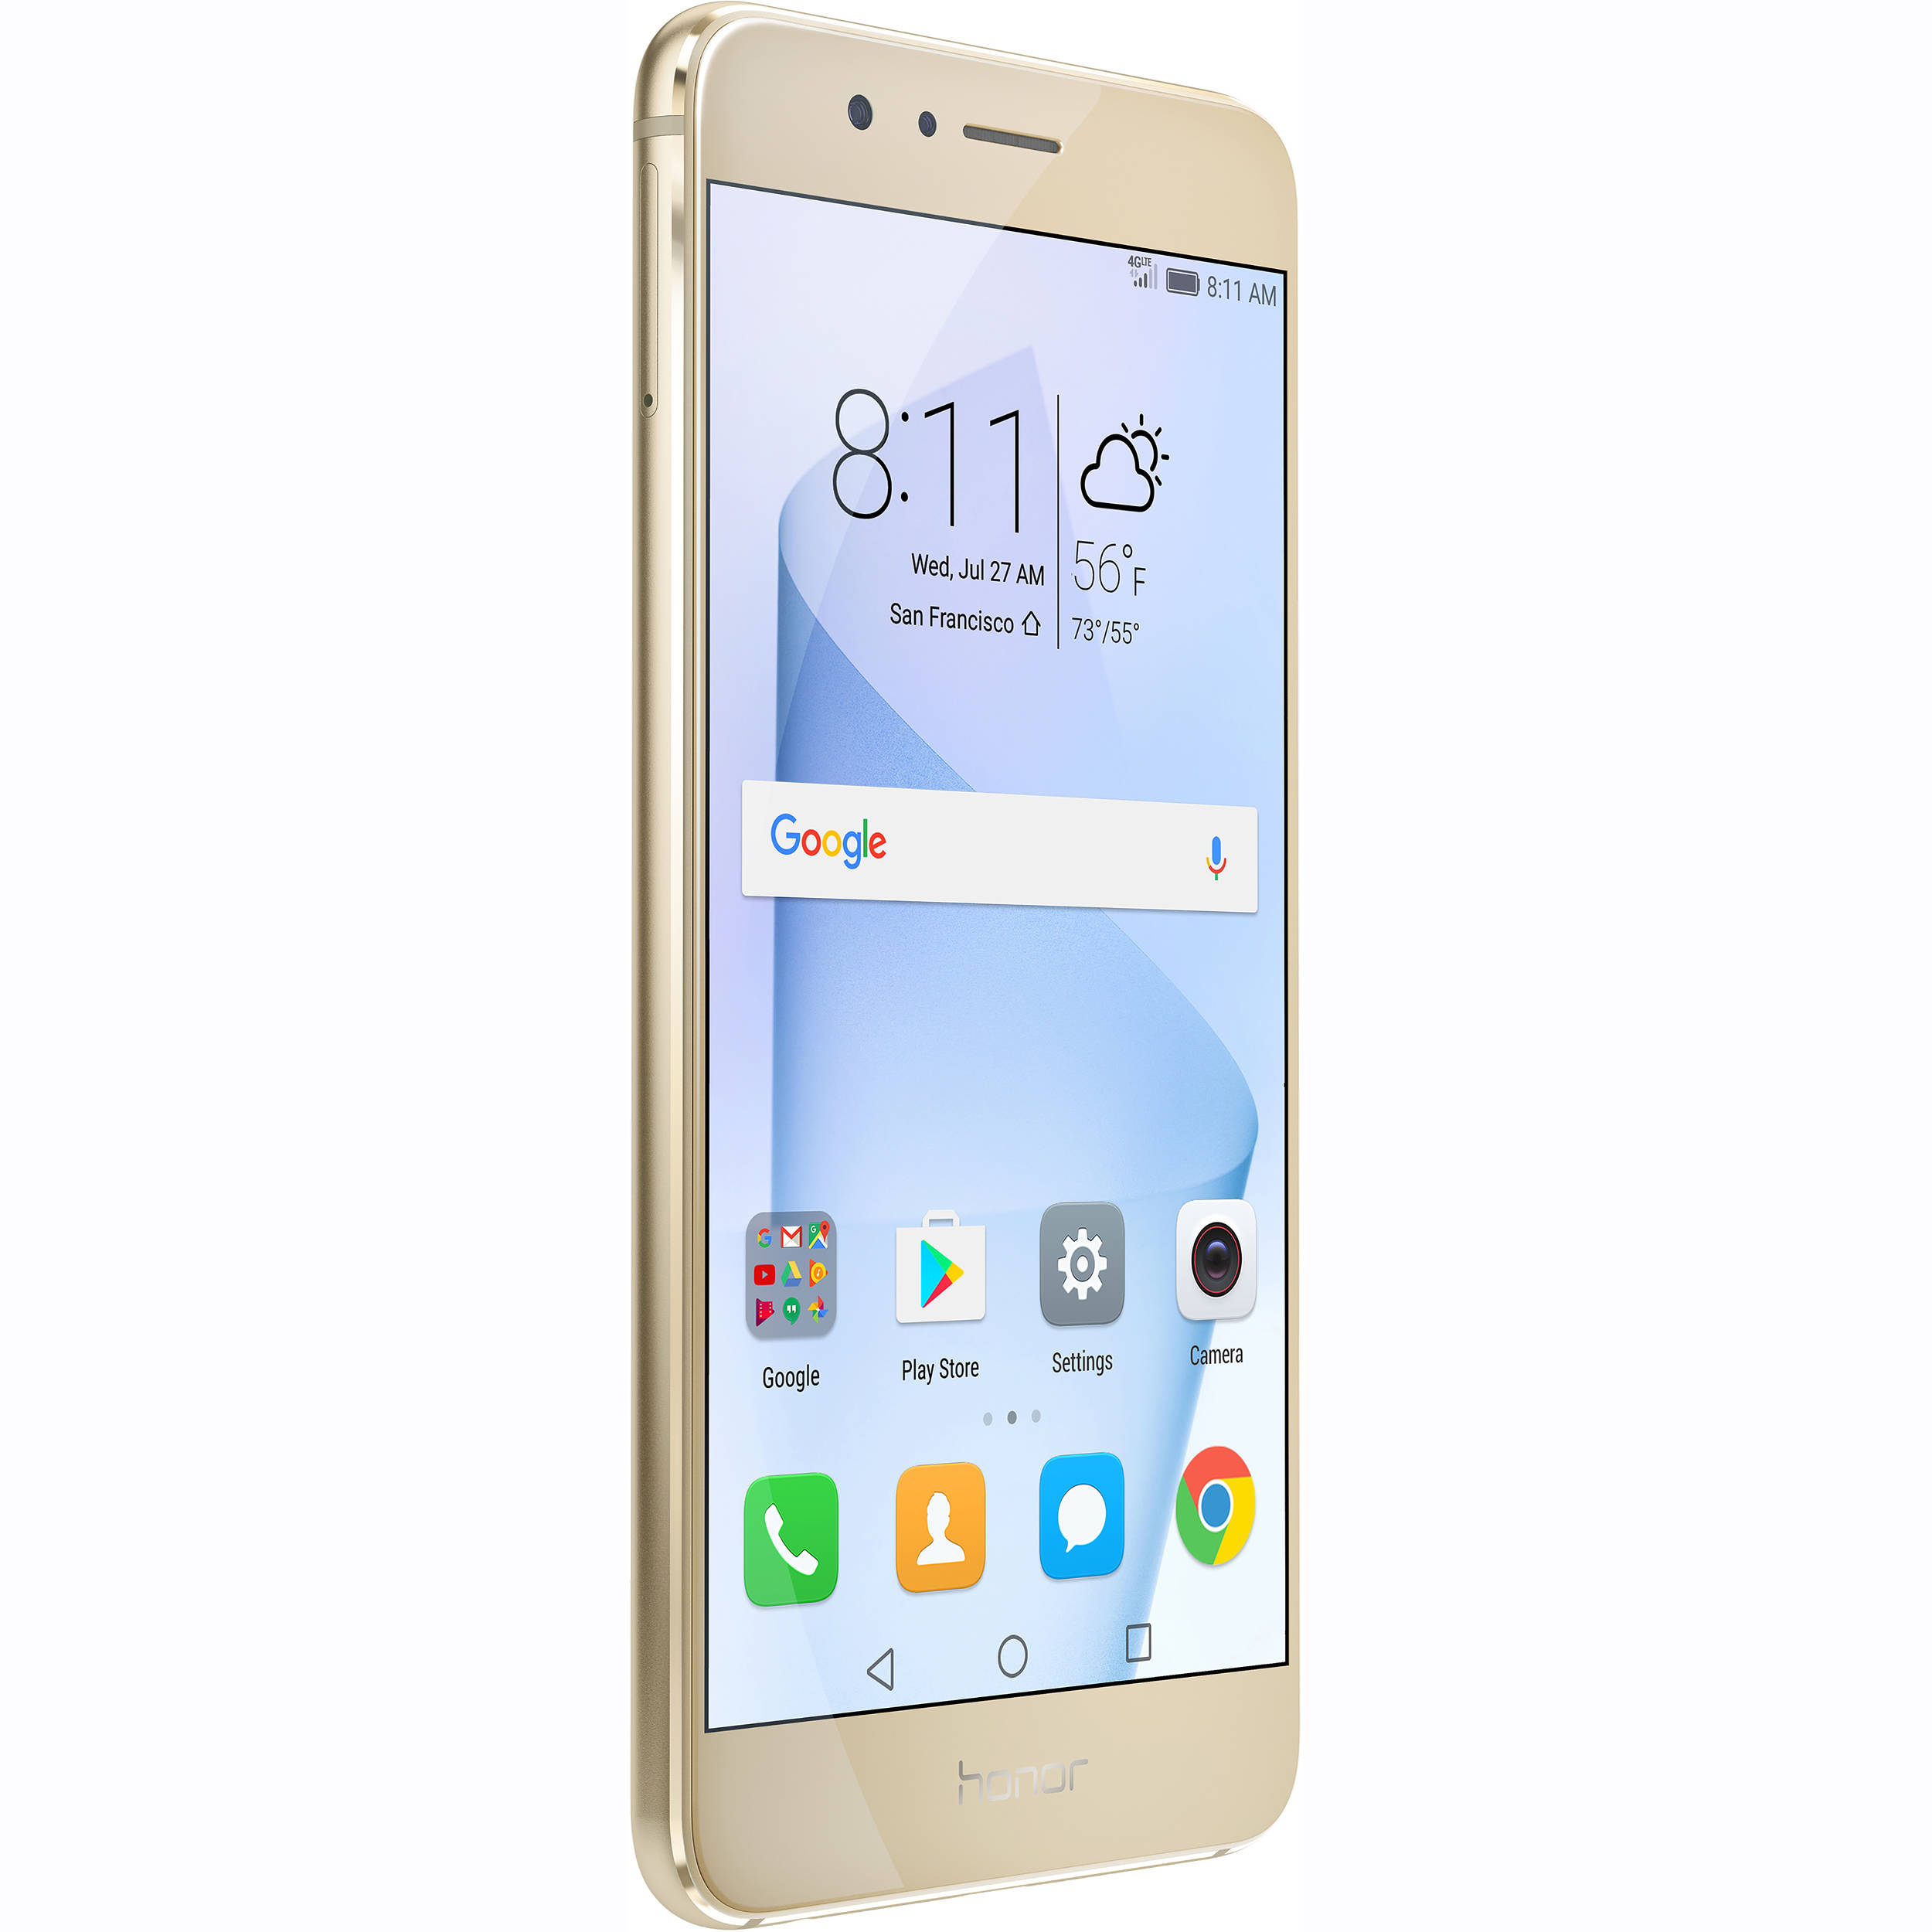 Huawei Honor 8 64GB Smartphone (Unlocked, Sunrise Gold)